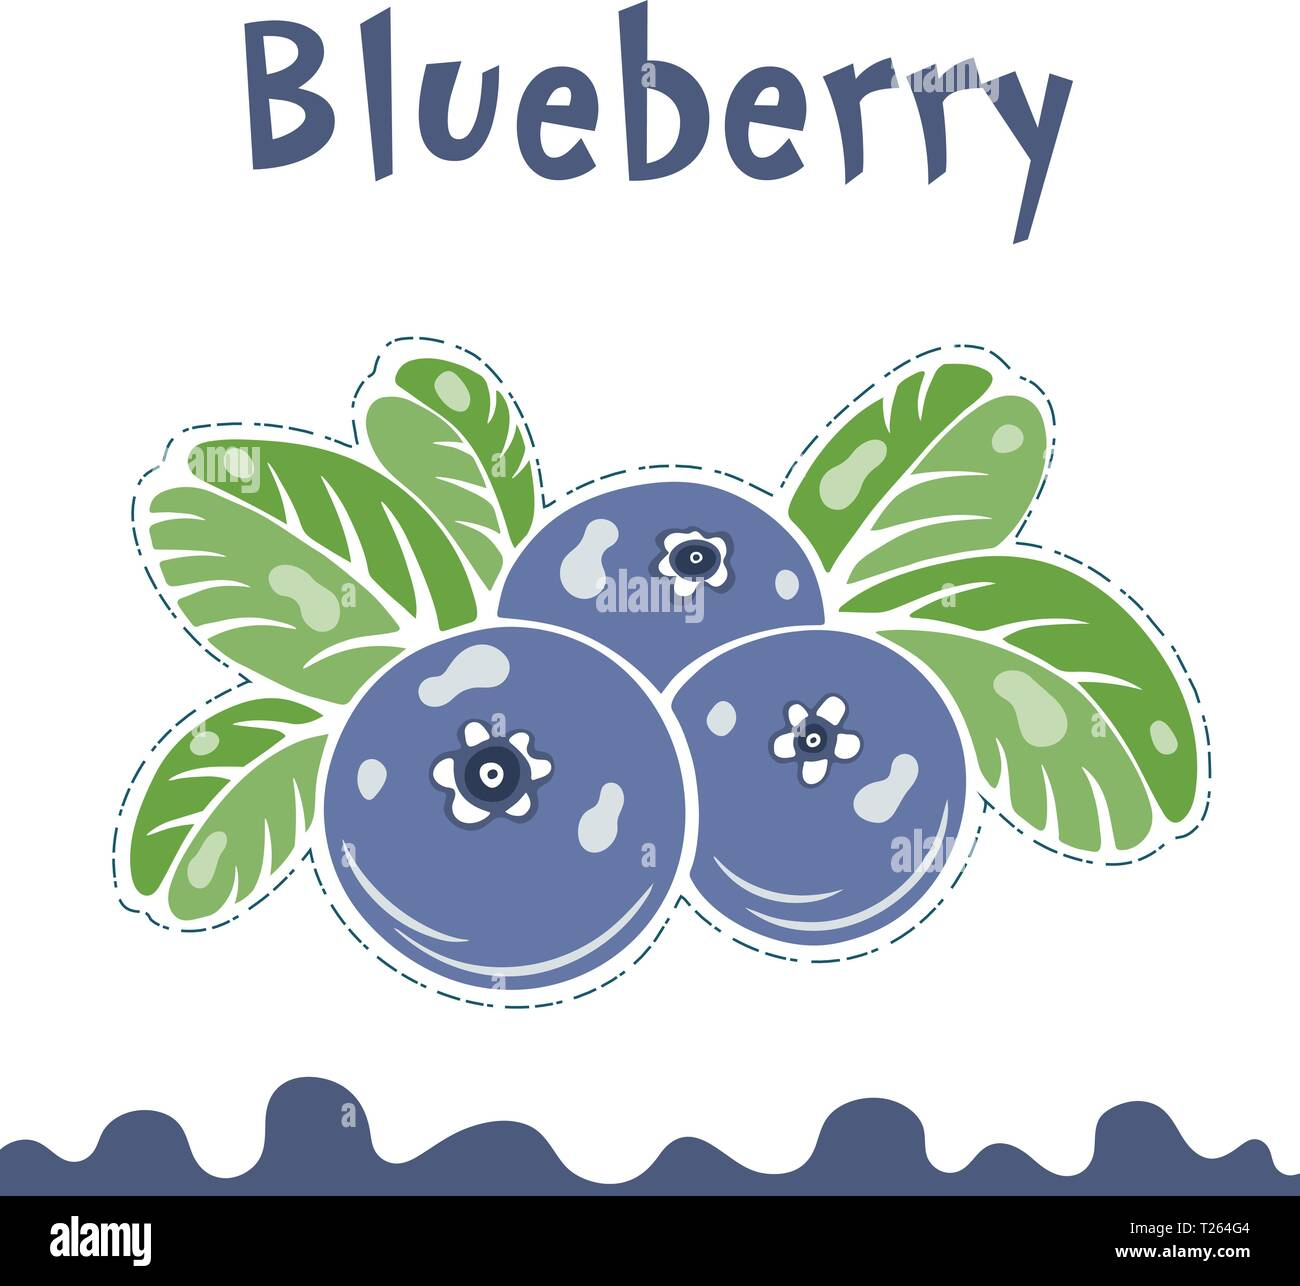 Blueberry vector illustration, berries images. Doodle Blueberry vector illustration in violet blue and green color. Blueberry berries images for menu - Stock Vector